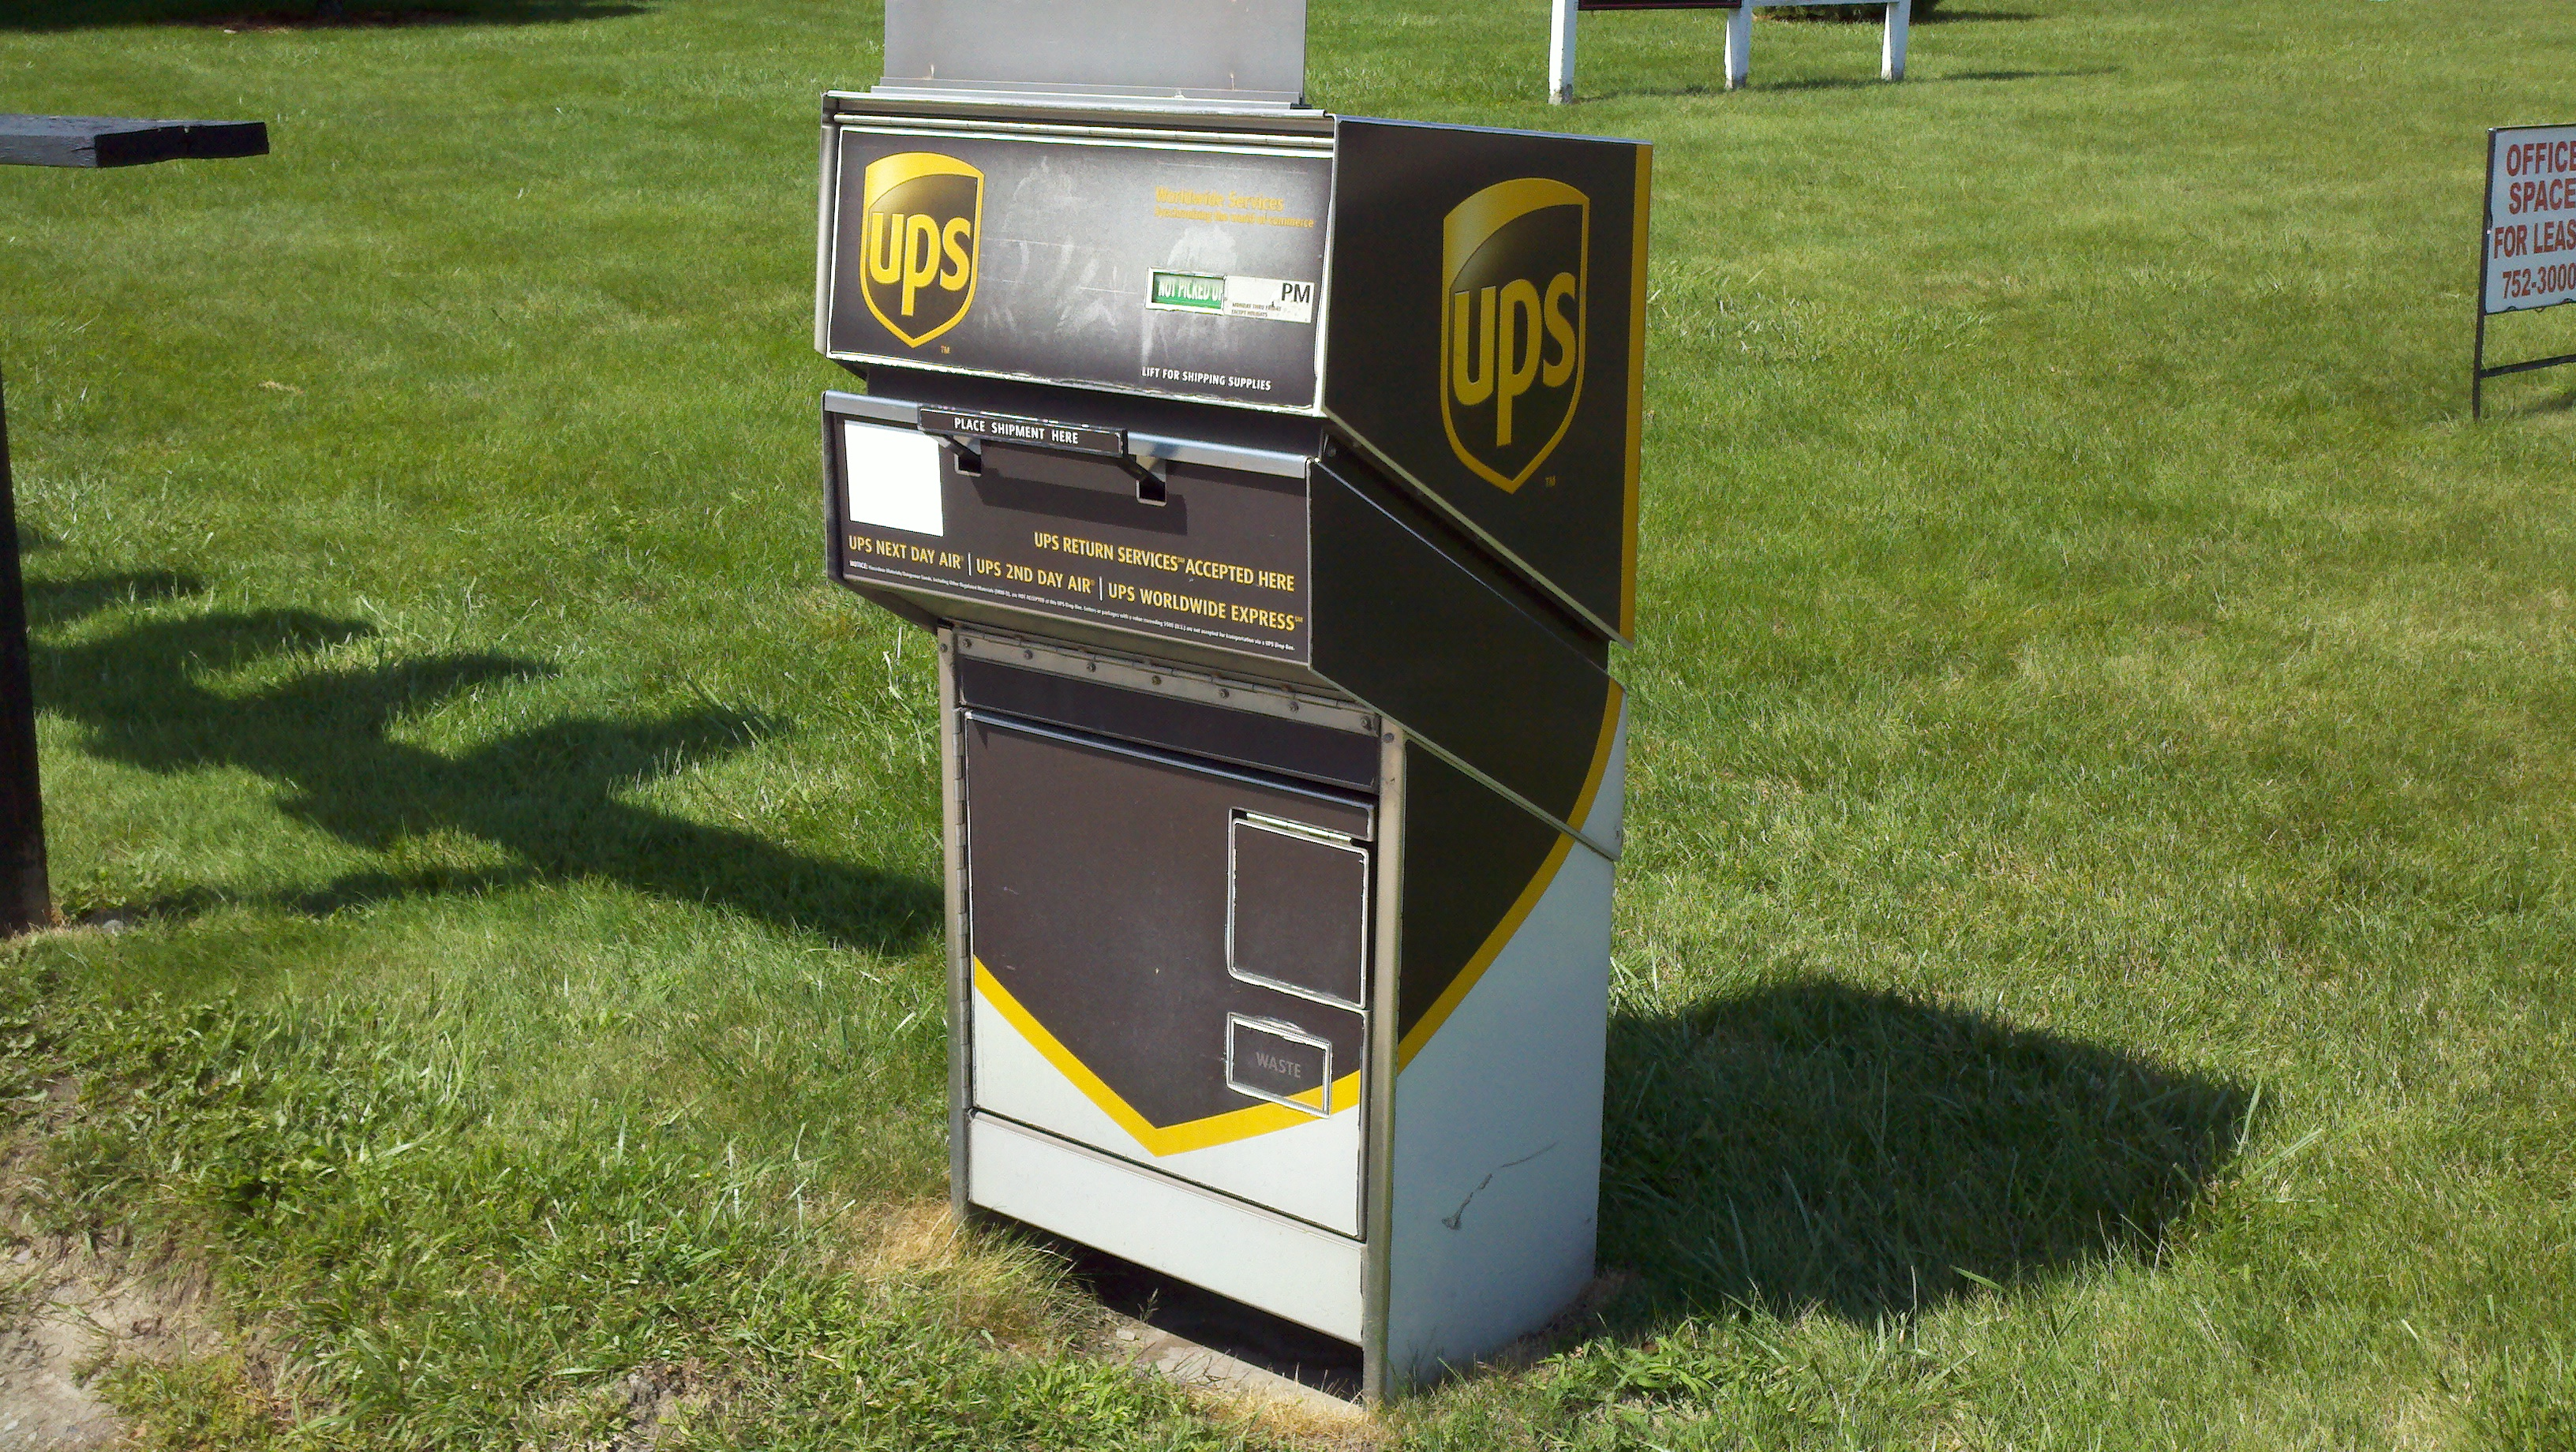 UPS drop box, ups drop off